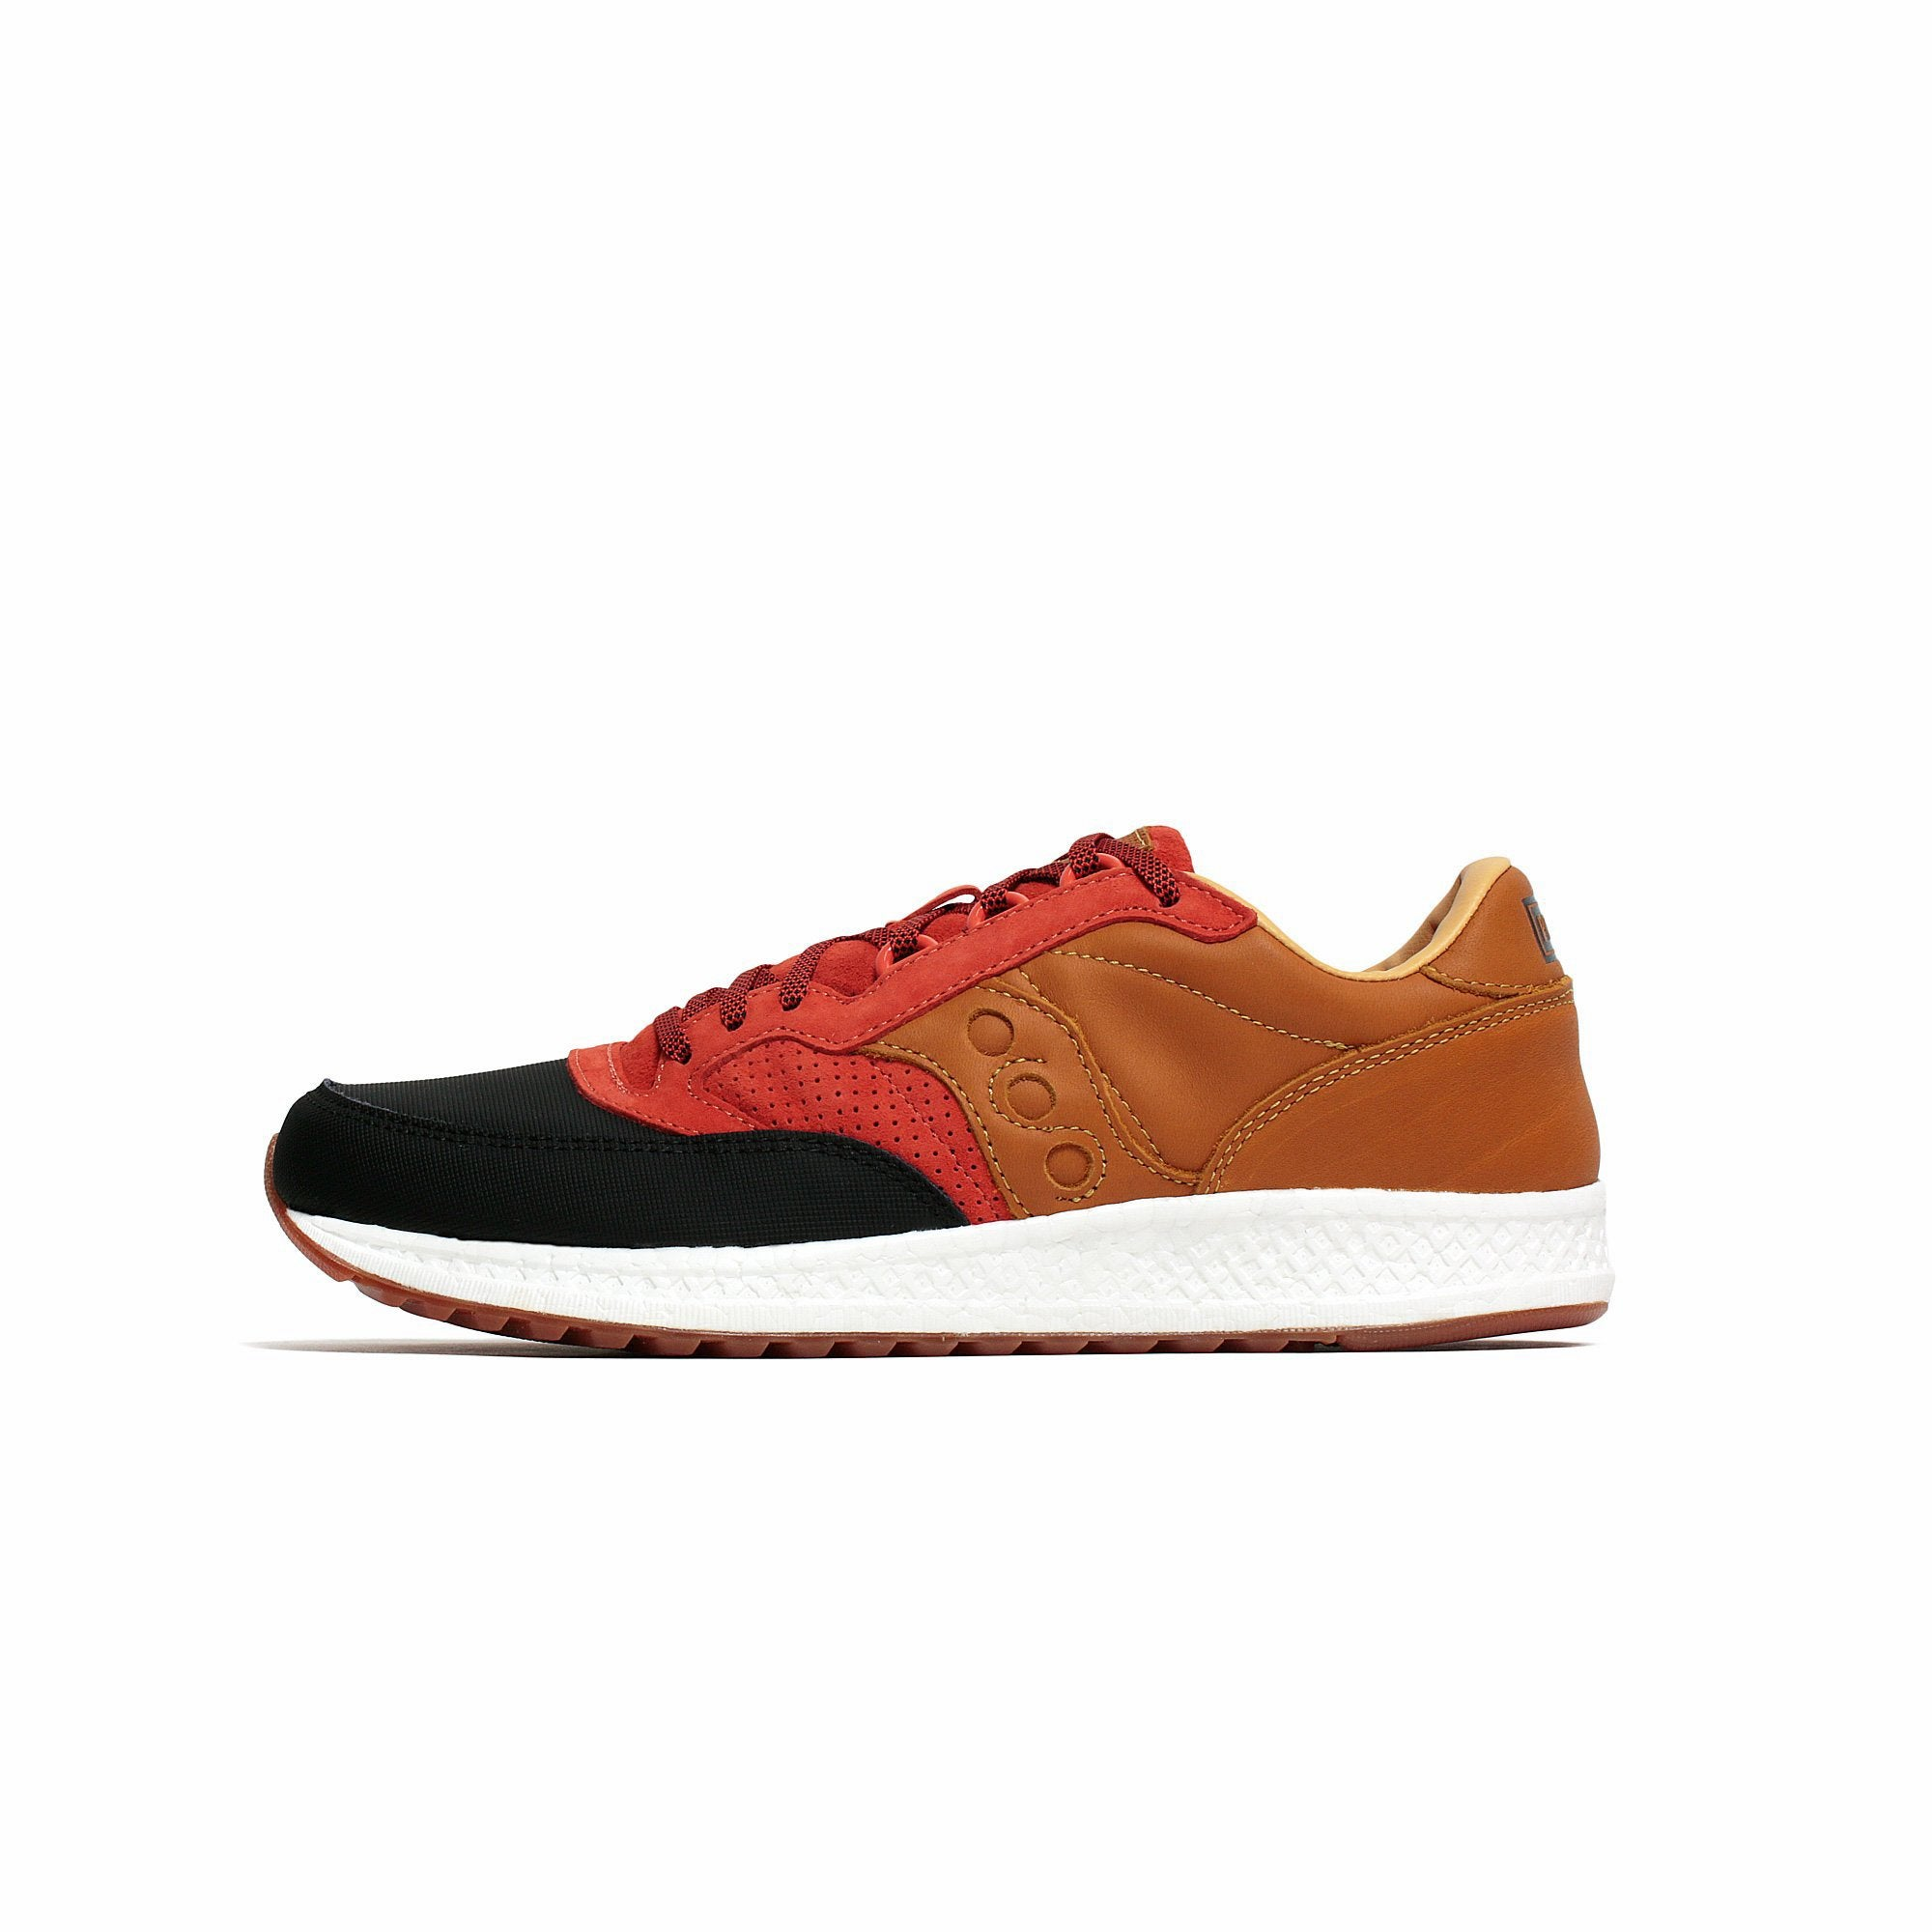 Saucony Freedom Runner Blk Size 10.5 Us